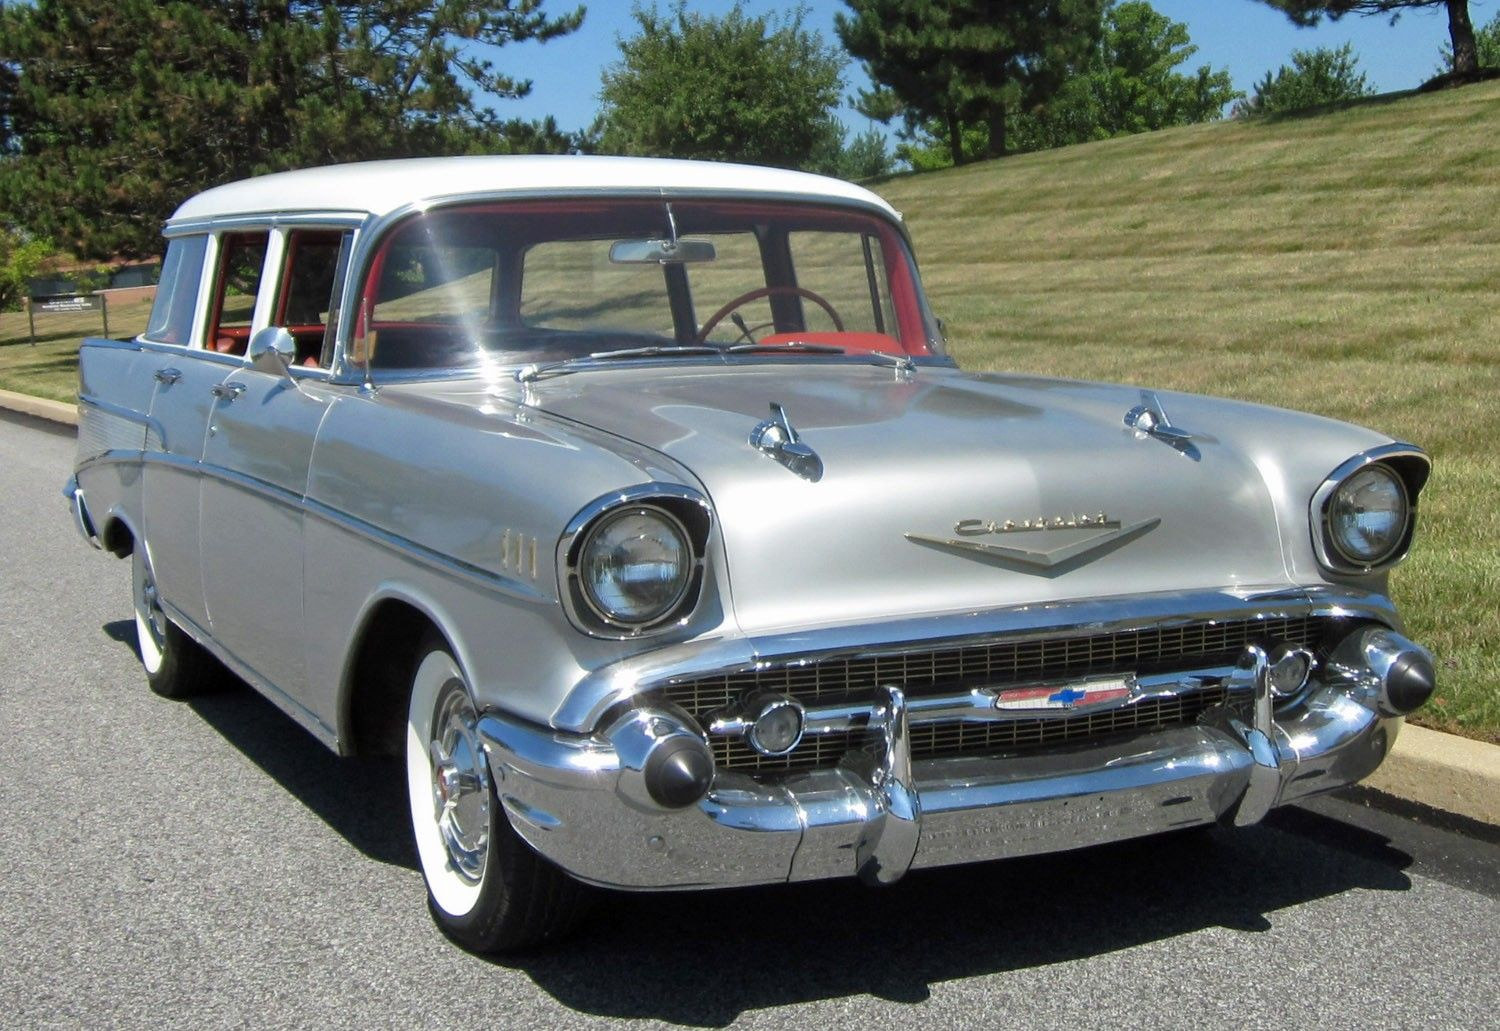 All Chevy 1957 chevy wagon for sale : 1957 Chevy For Sale | 1957 Chevrolet Bel Air Wagon Silver, for ...